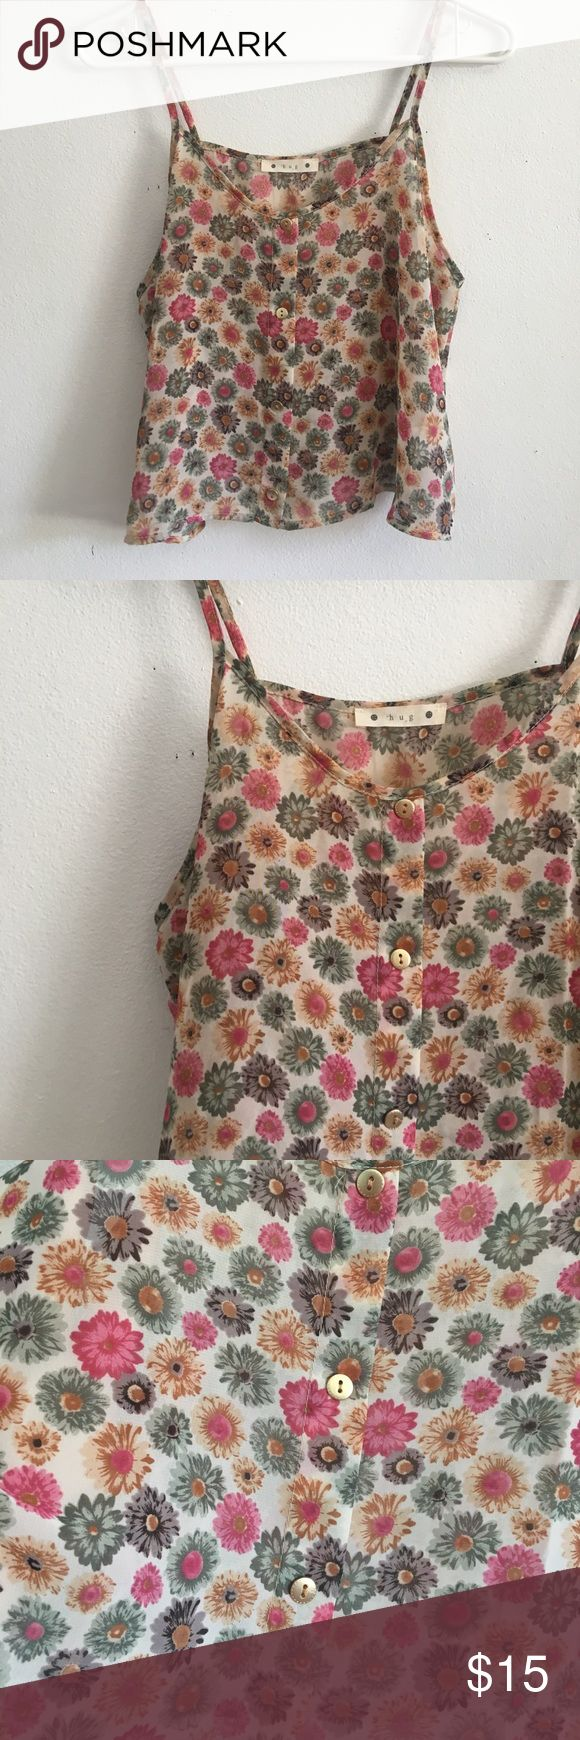 • Colorful Floral Daisy Tank Top • Brand new without tags!!. Has gold button accents but it doesn't not unbutton. Sheer floral daisy top similar to American apparel chiffon tanks 🌸✨ ⭐️Bundles 15% off⭐️  please feel free to ask any questions or submit an offer. hug Tops